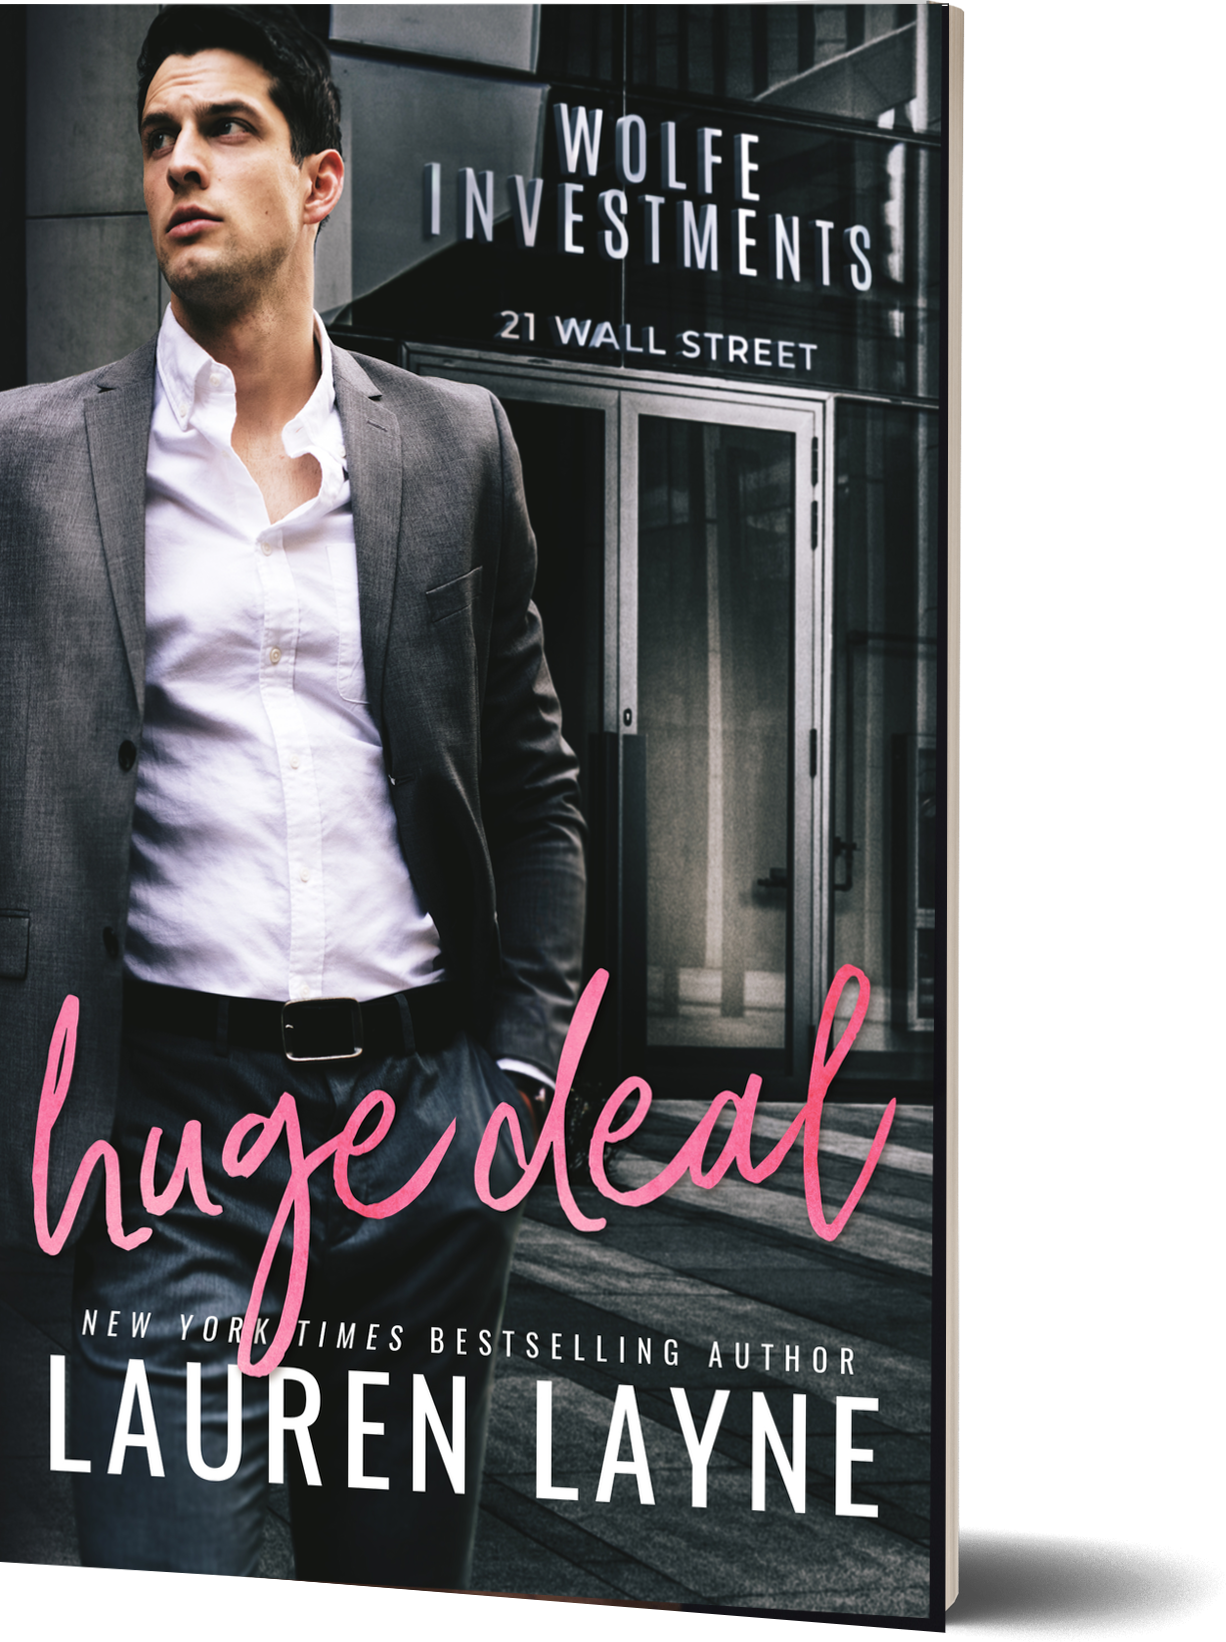 Huge Deal by Lauren Layne